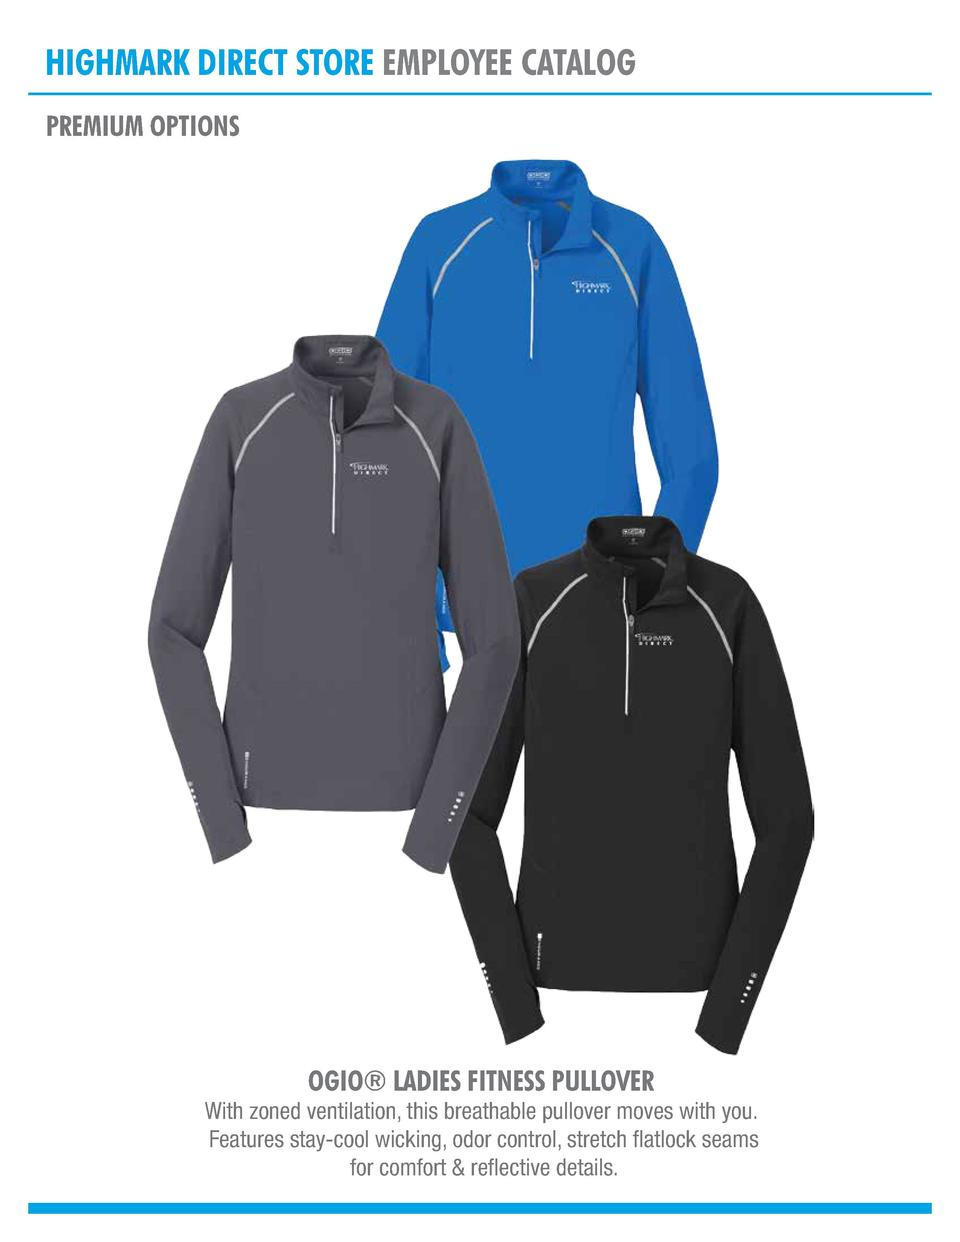 HIGHMARK DIRECT STORE EMPLOYEE CATALOG PREMIUM OPTIONS  OGIO   LADIES FITNESS PULLOVER  With zoned ventilation, this breat...